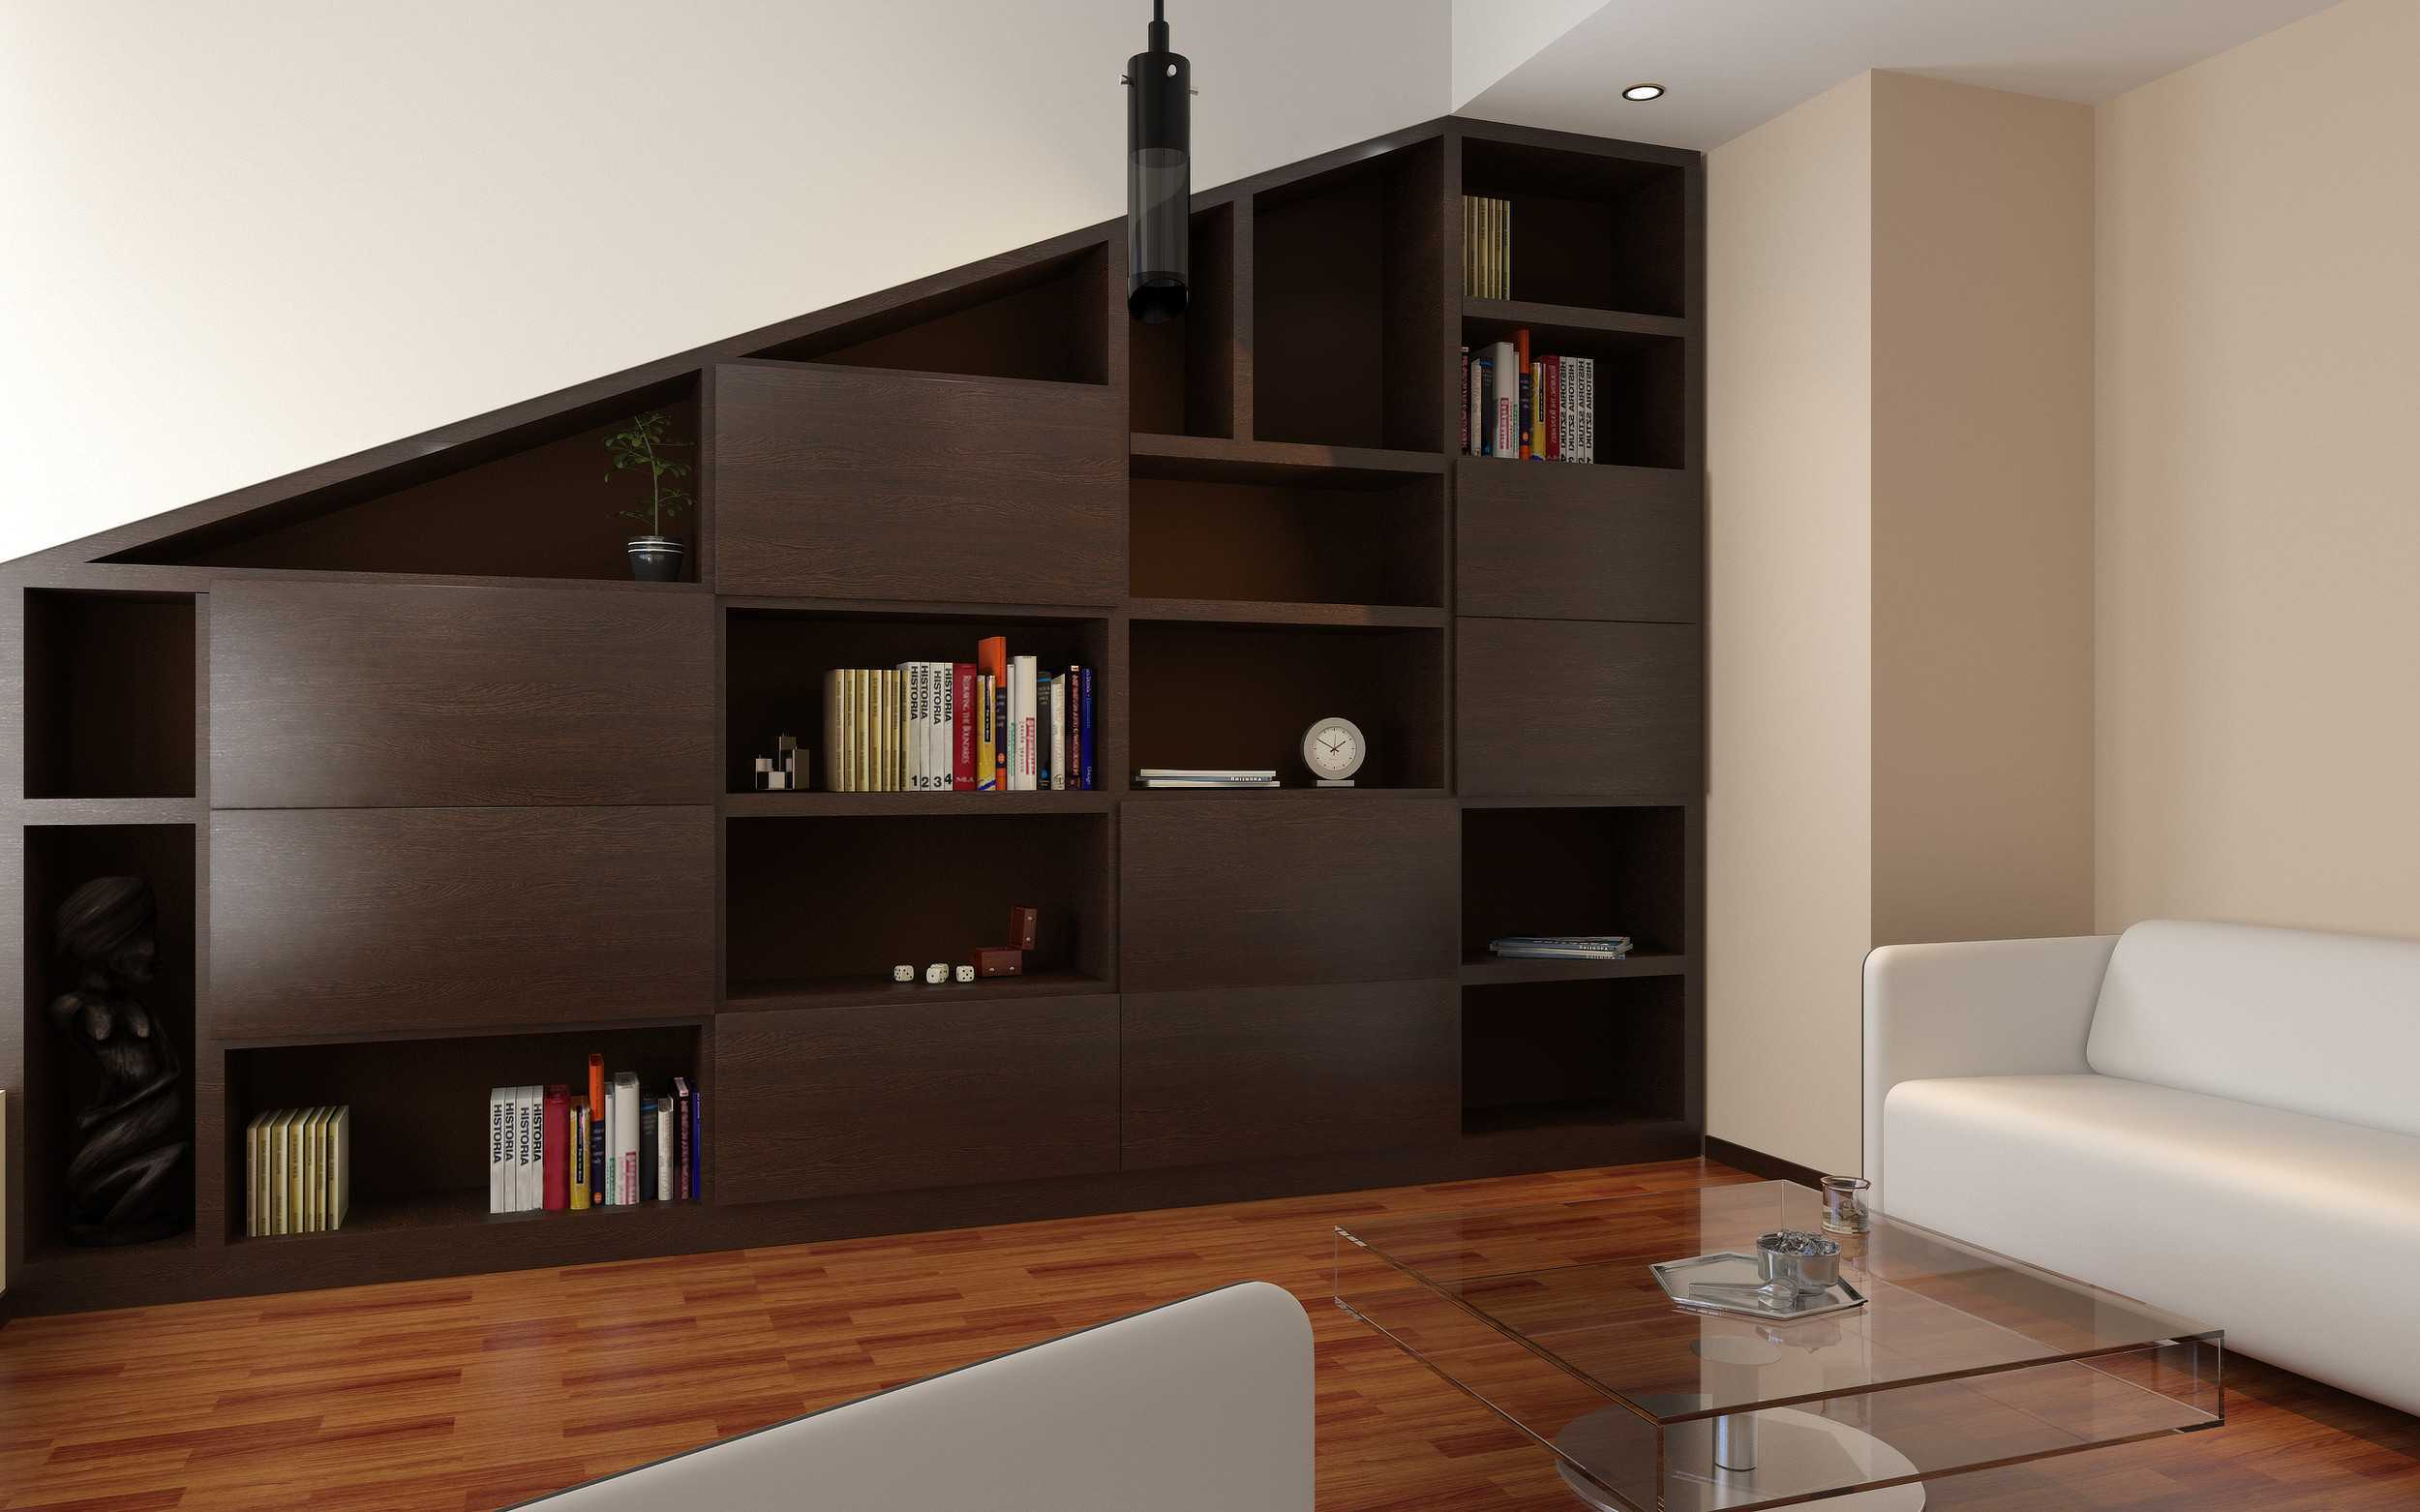 biblioth que sous comble ou sous pente la maison des bibliotheques. Black Bedroom Furniture Sets. Home Design Ideas